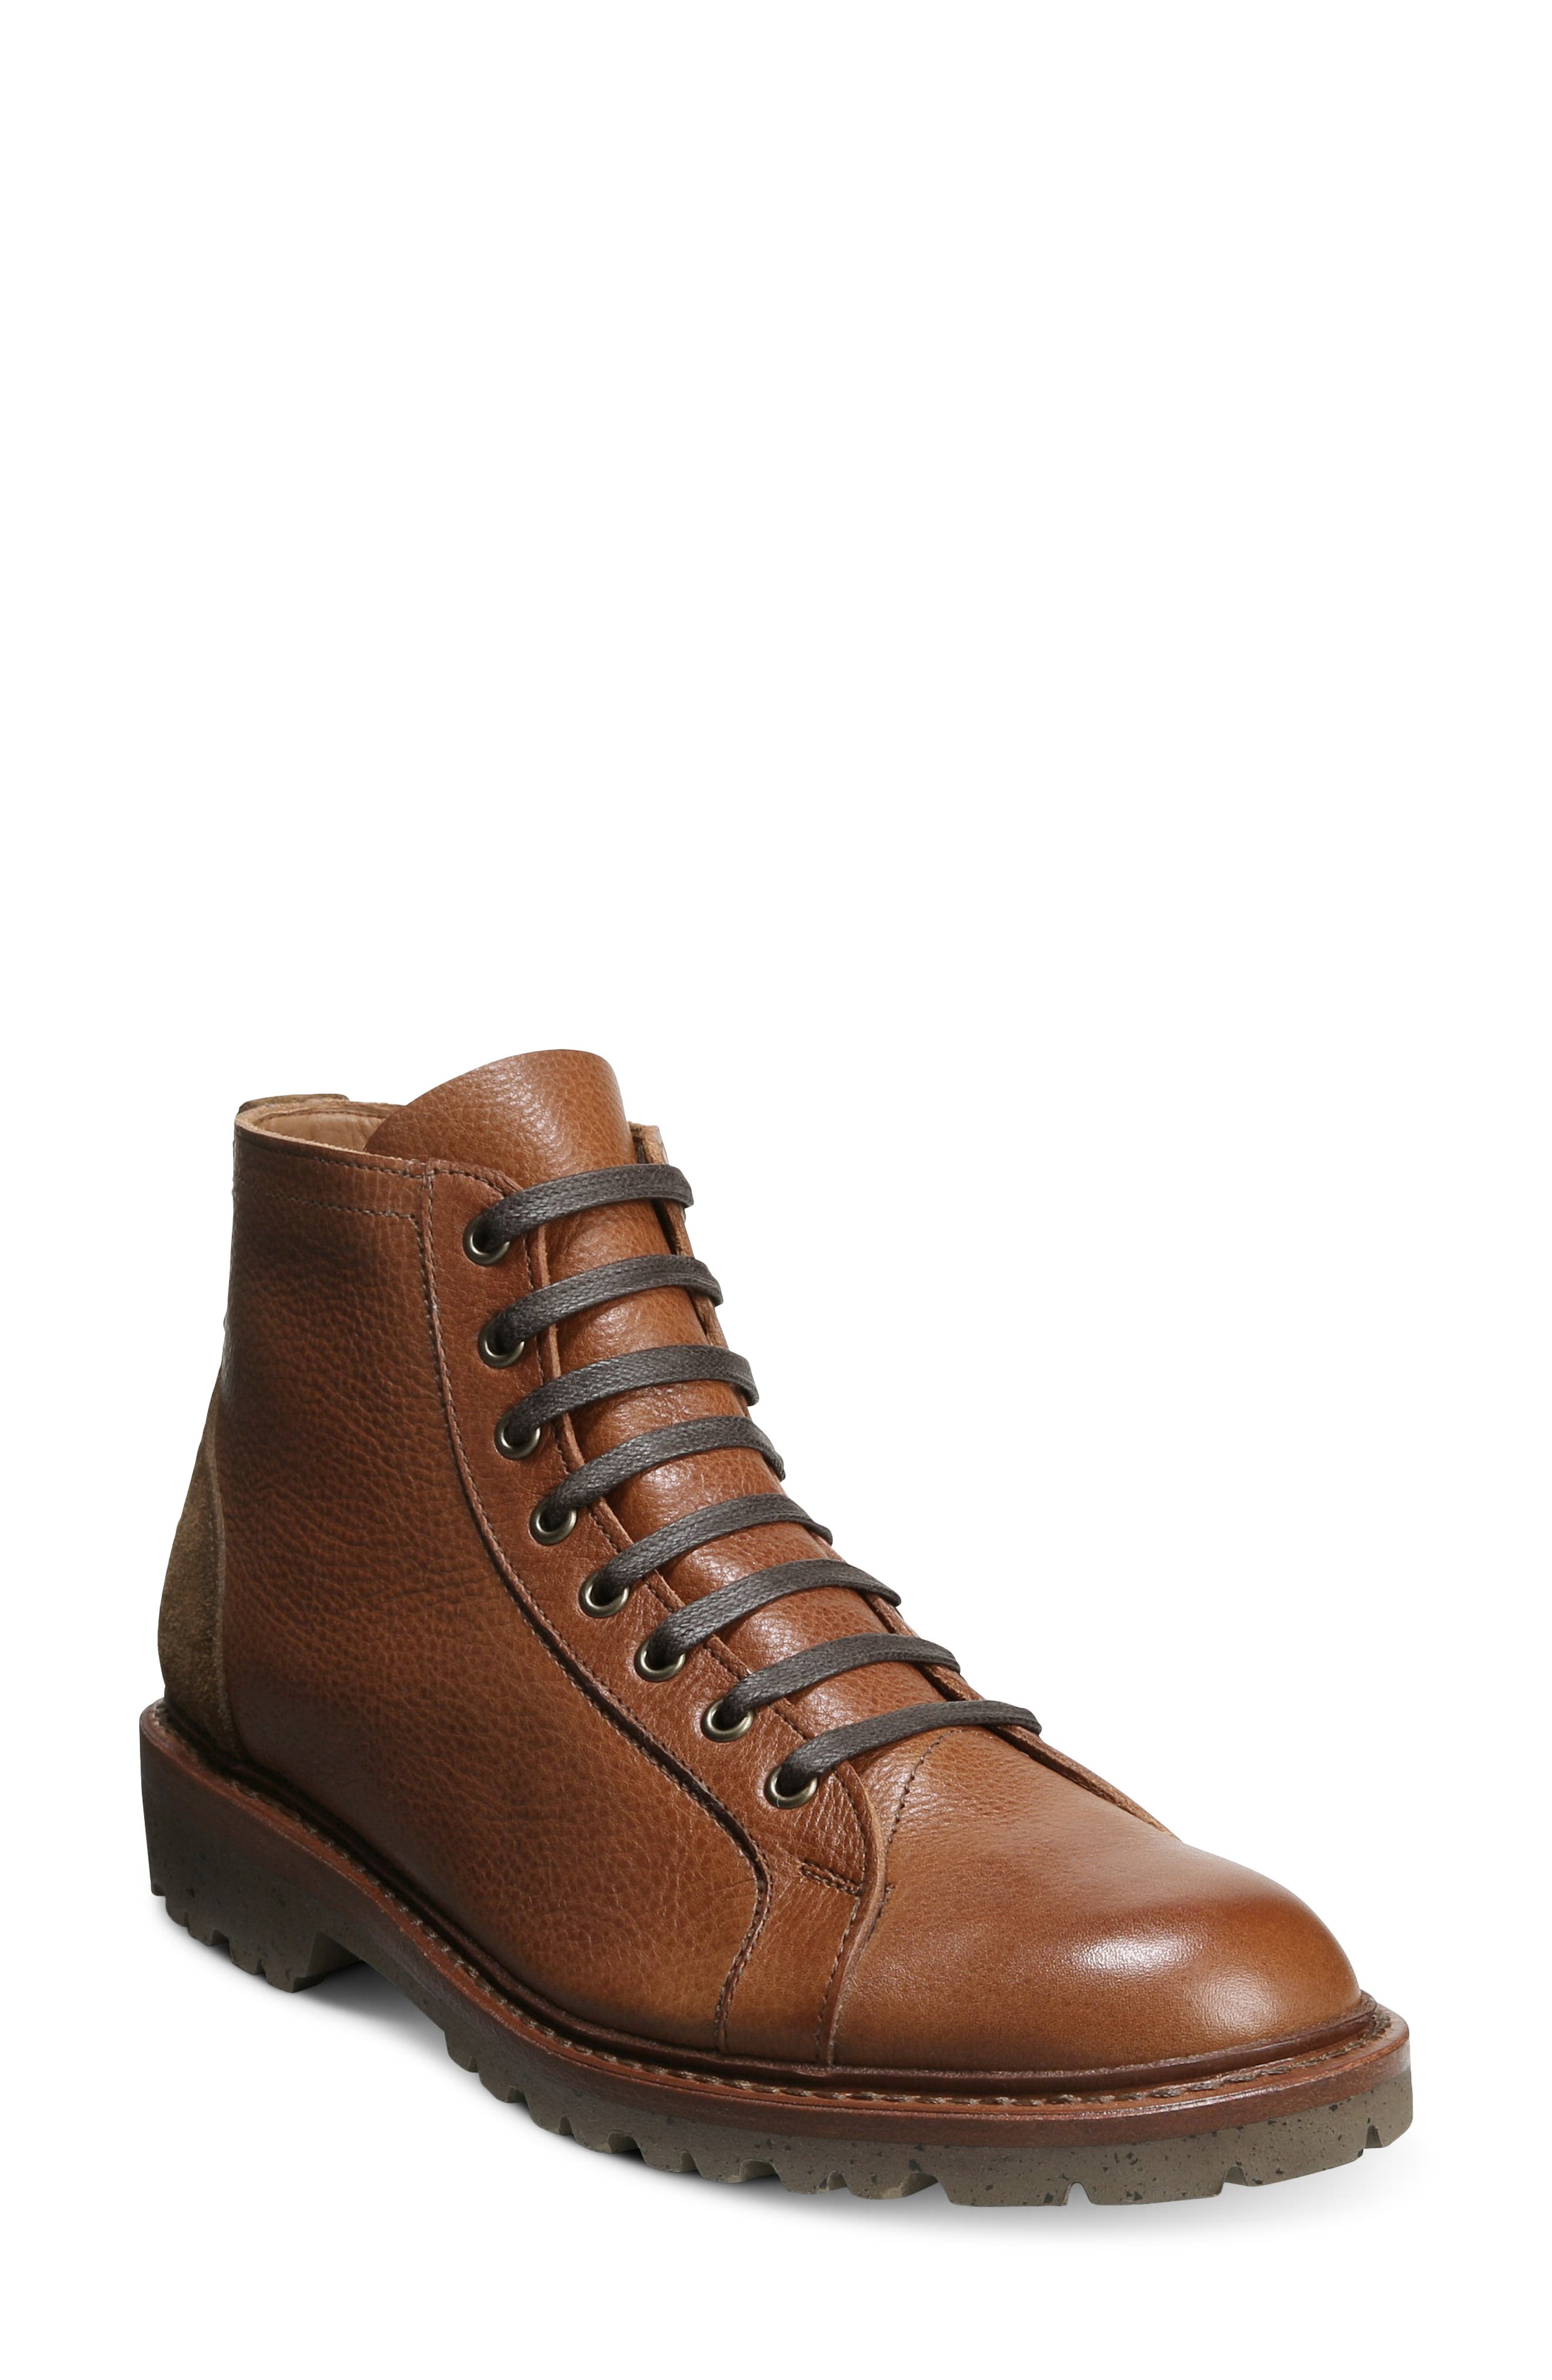 Discover Lugged Lace-Up Boot